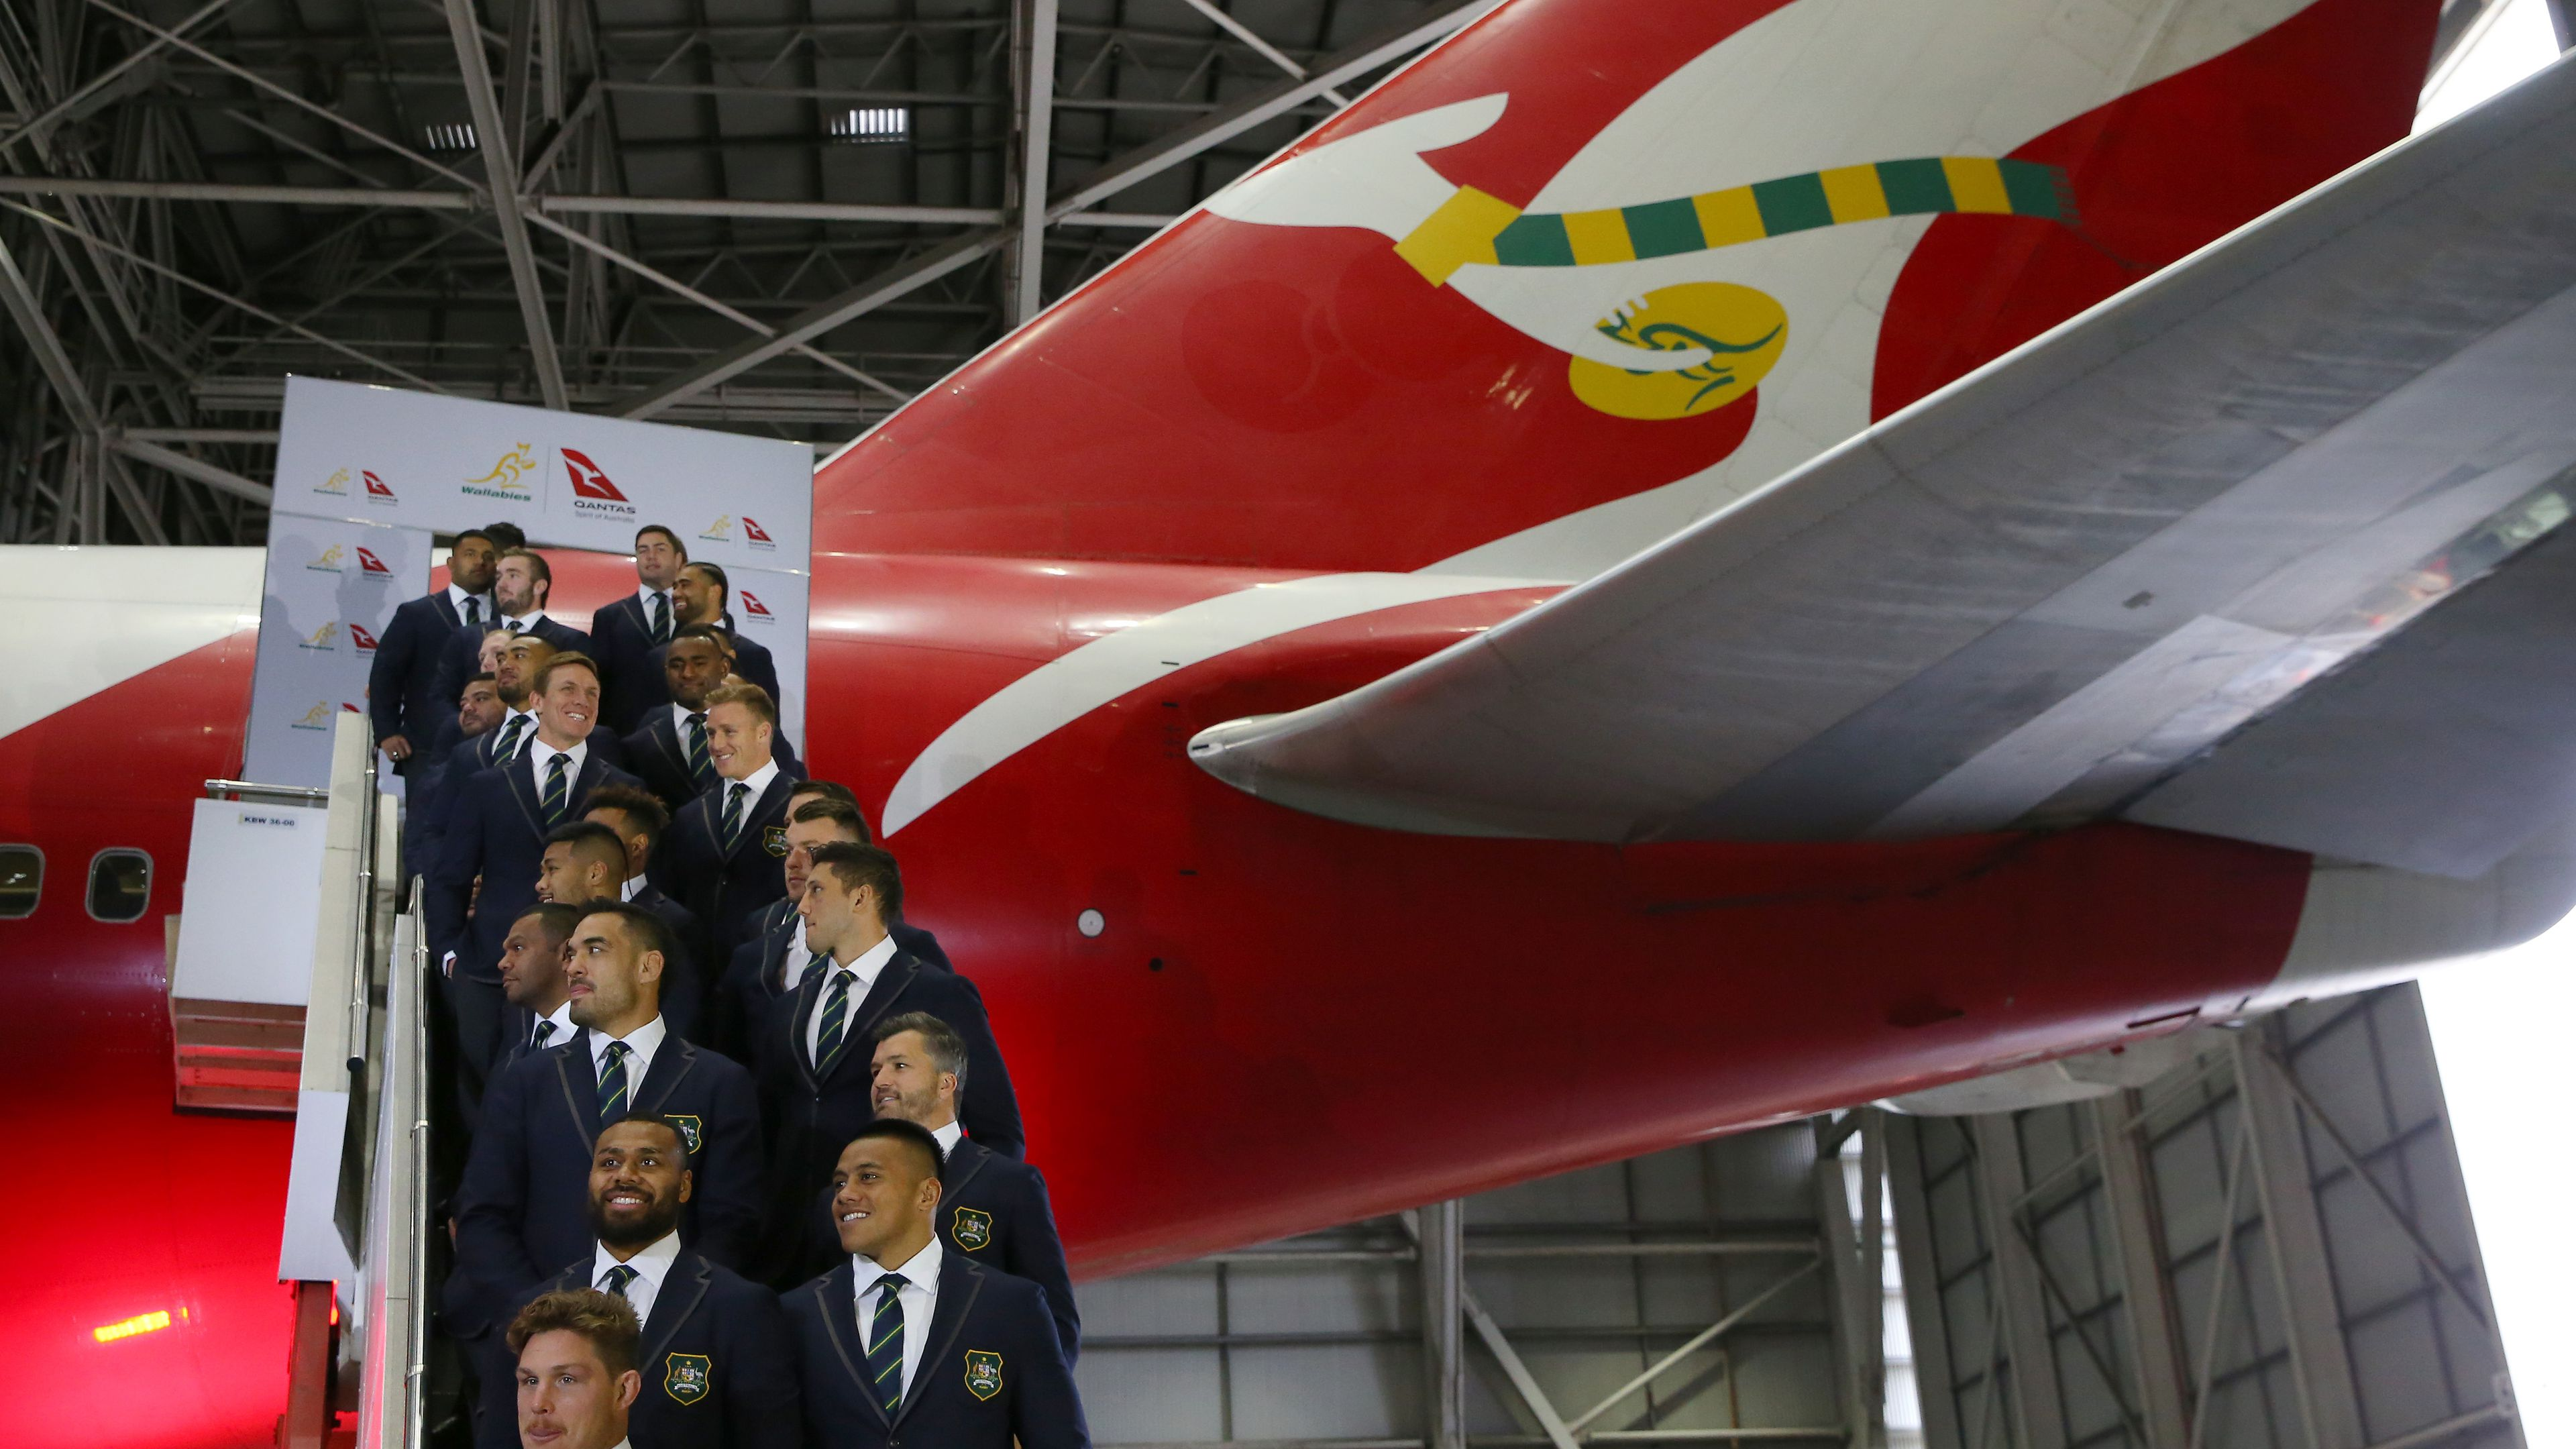 The Wallabies at a World Cup squad announcement hosted by Qantas.